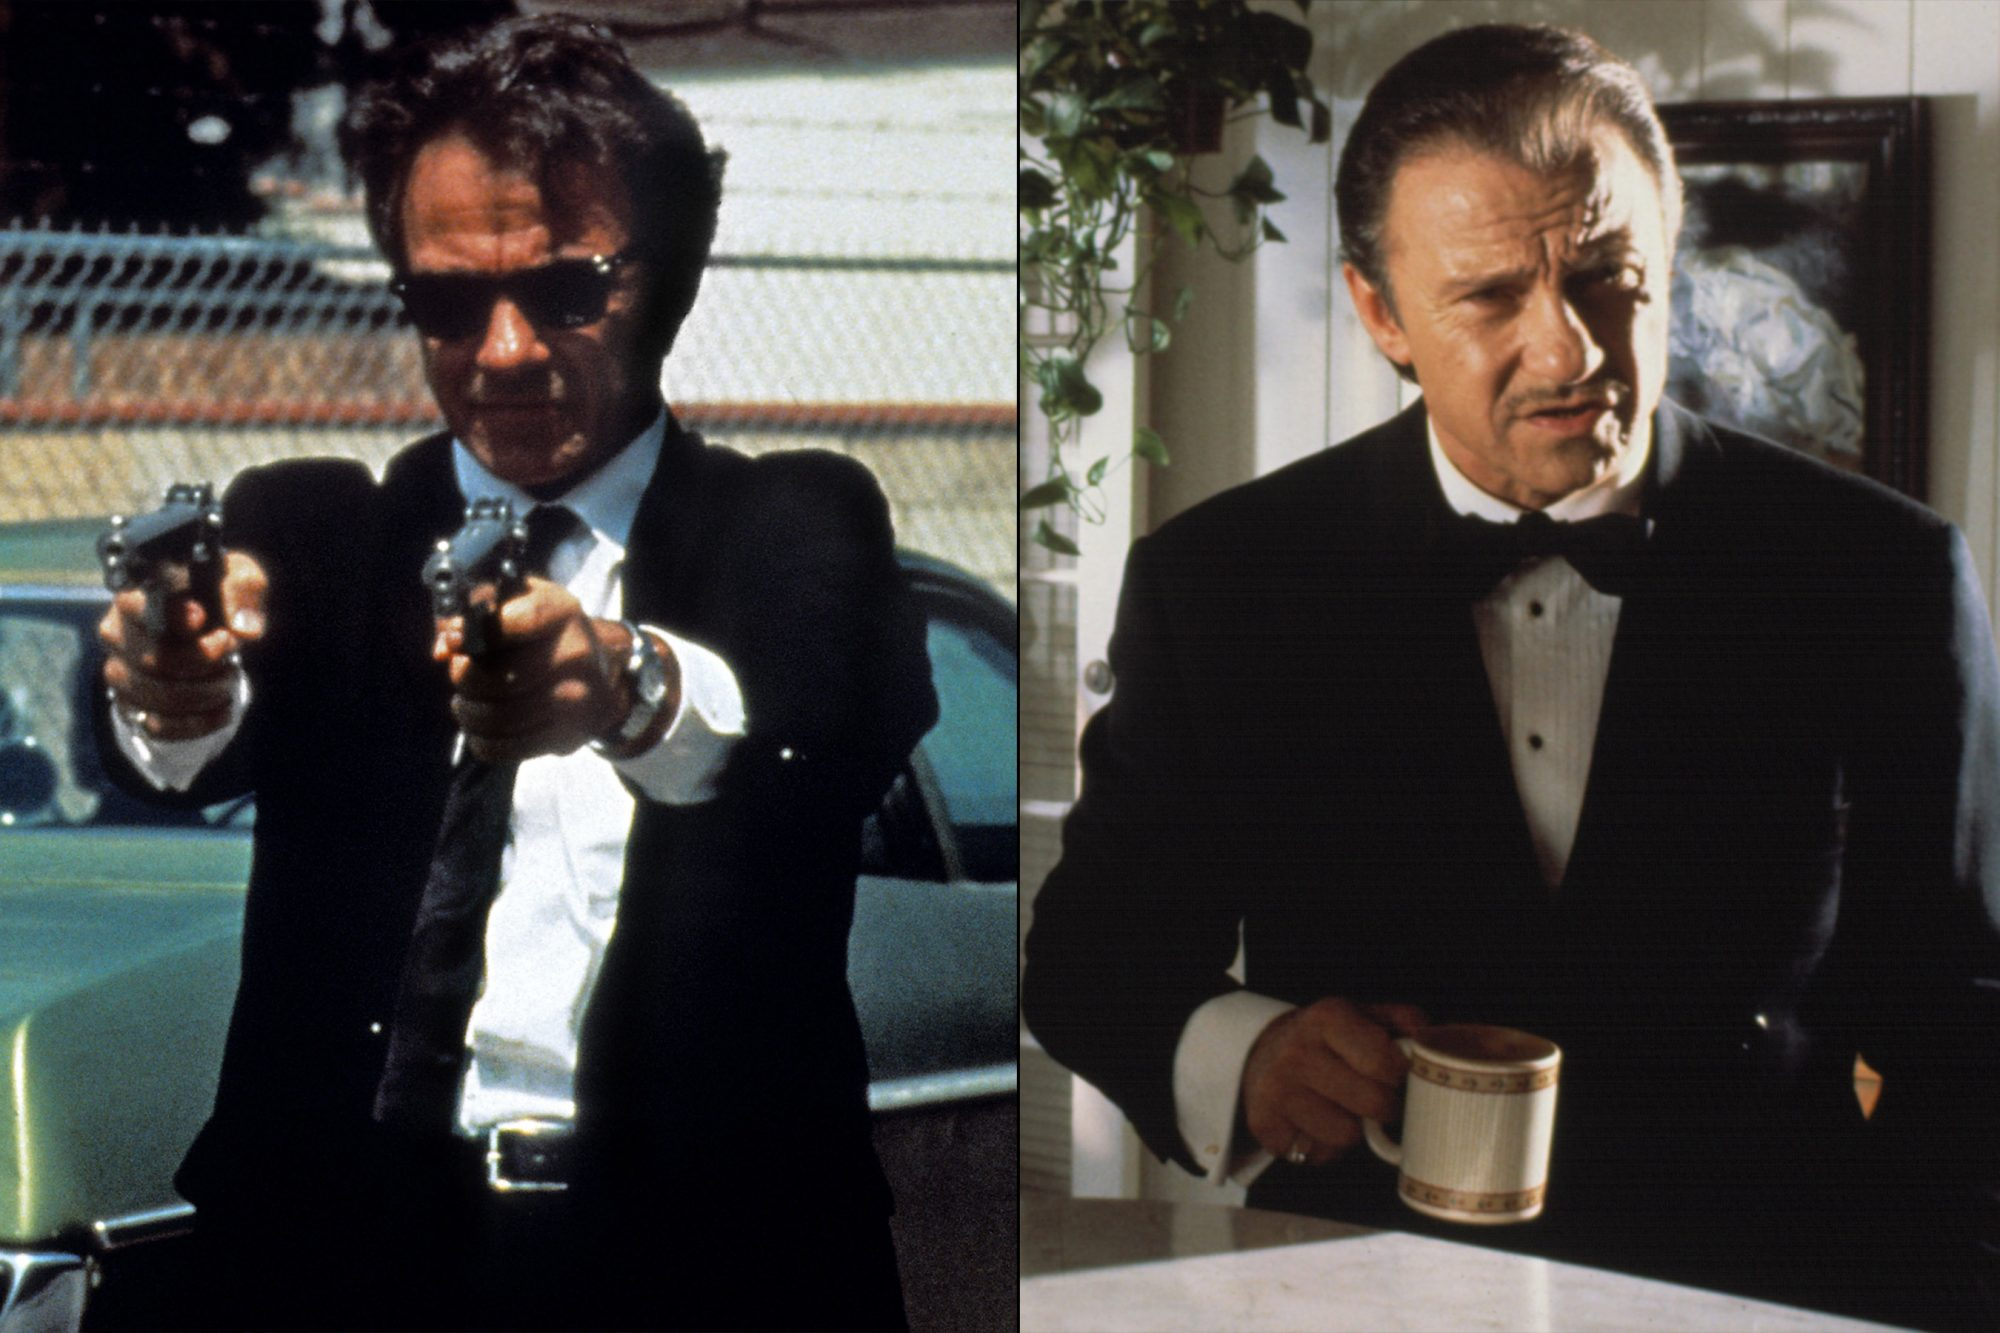 8. Harvey Keitel (Reservoir Dogs, Pulp Fiction, Inglorious Basterds)